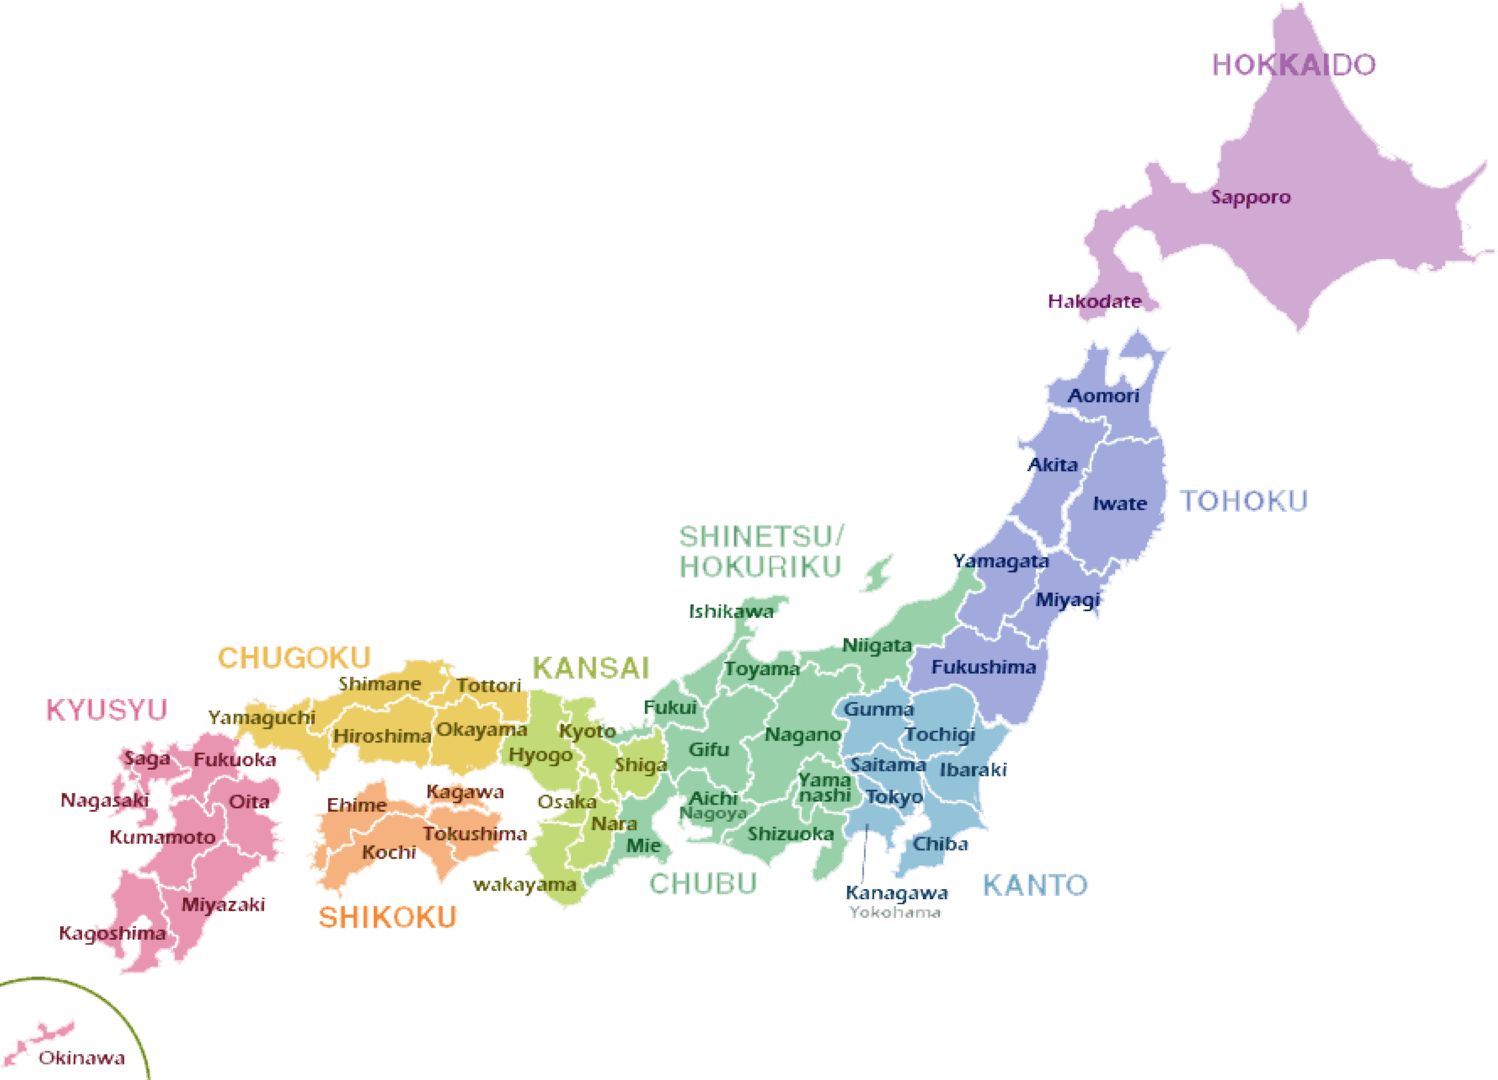 Know All the Islands of Japan